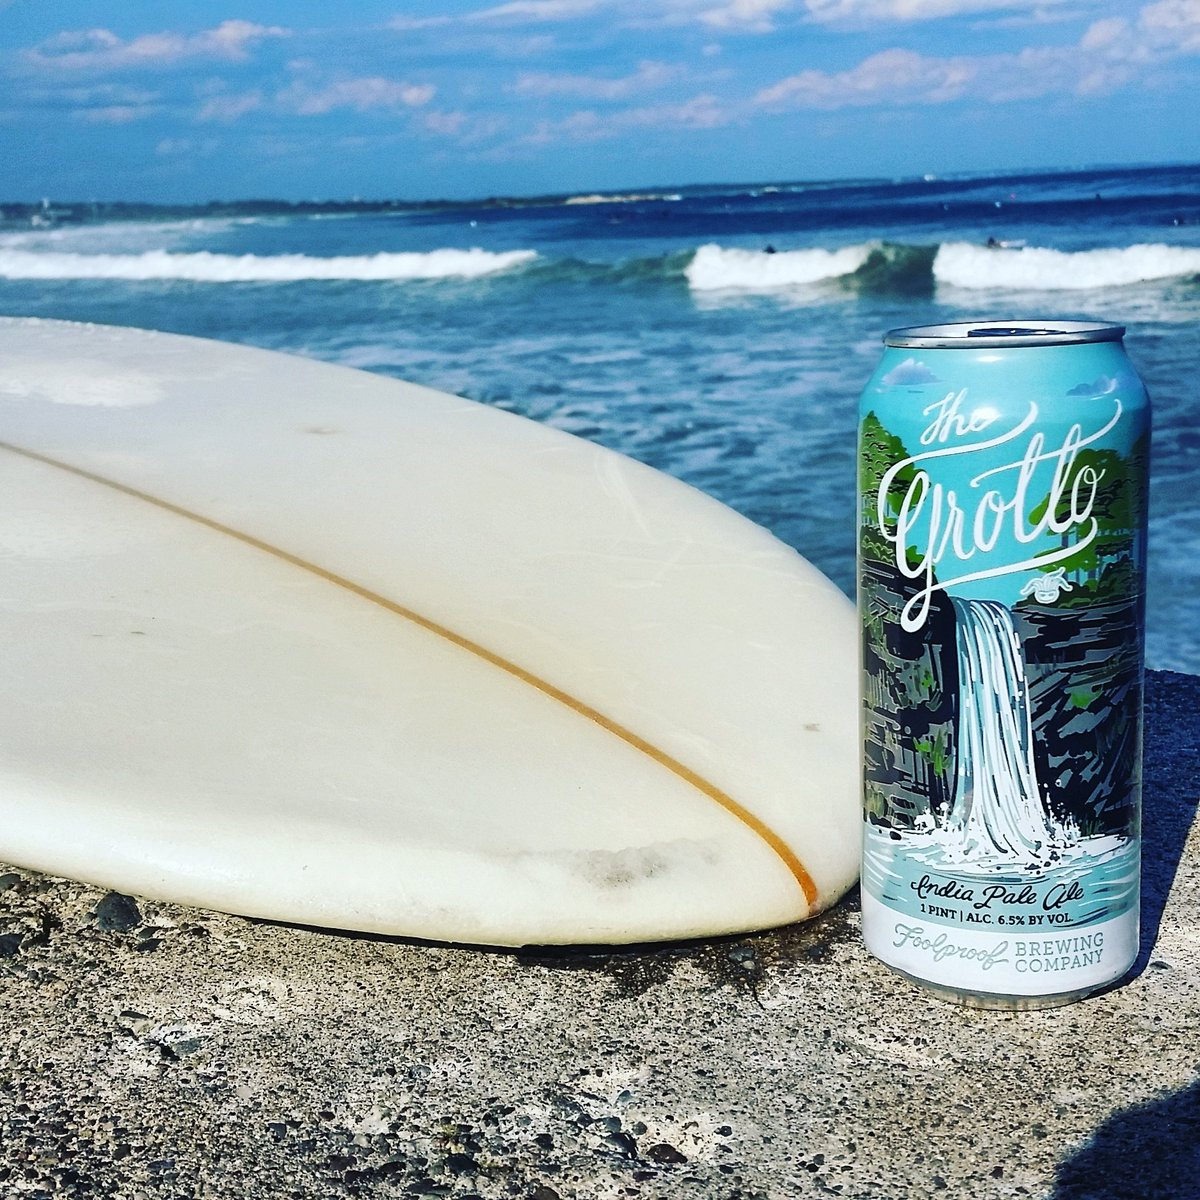 Surfs up and taps are open tonight for tastings 4:00pm-7:00pm. #surfboard #tastings #taproom #beertasting    #waves #beer<br>http://pic.twitter.com/67AYeBjTCc